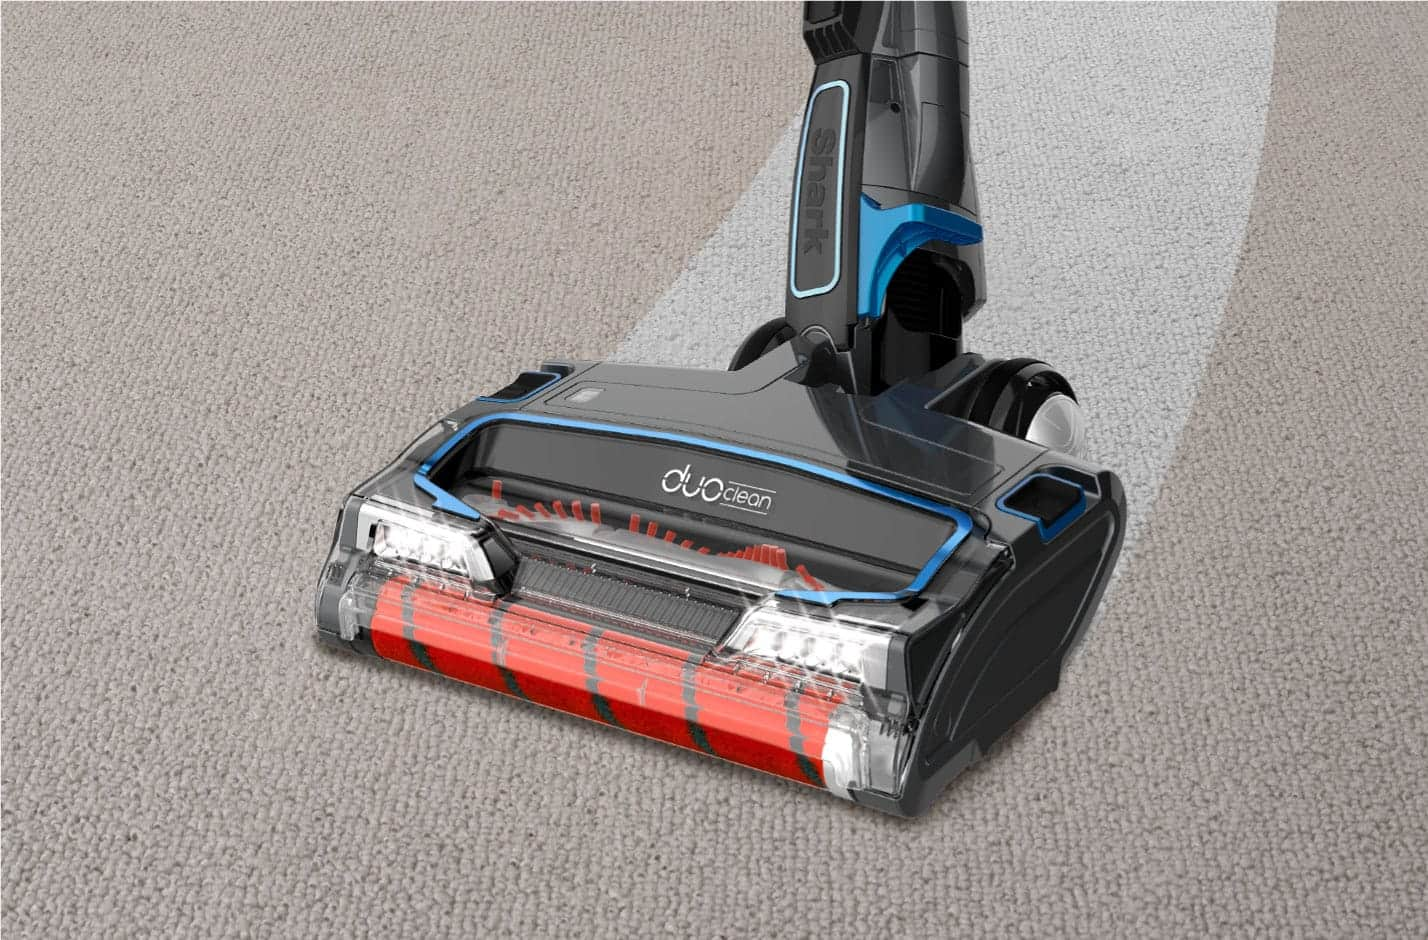 Shark 174 Duoclean Technology Upright Amp Ultra Light Vacuums